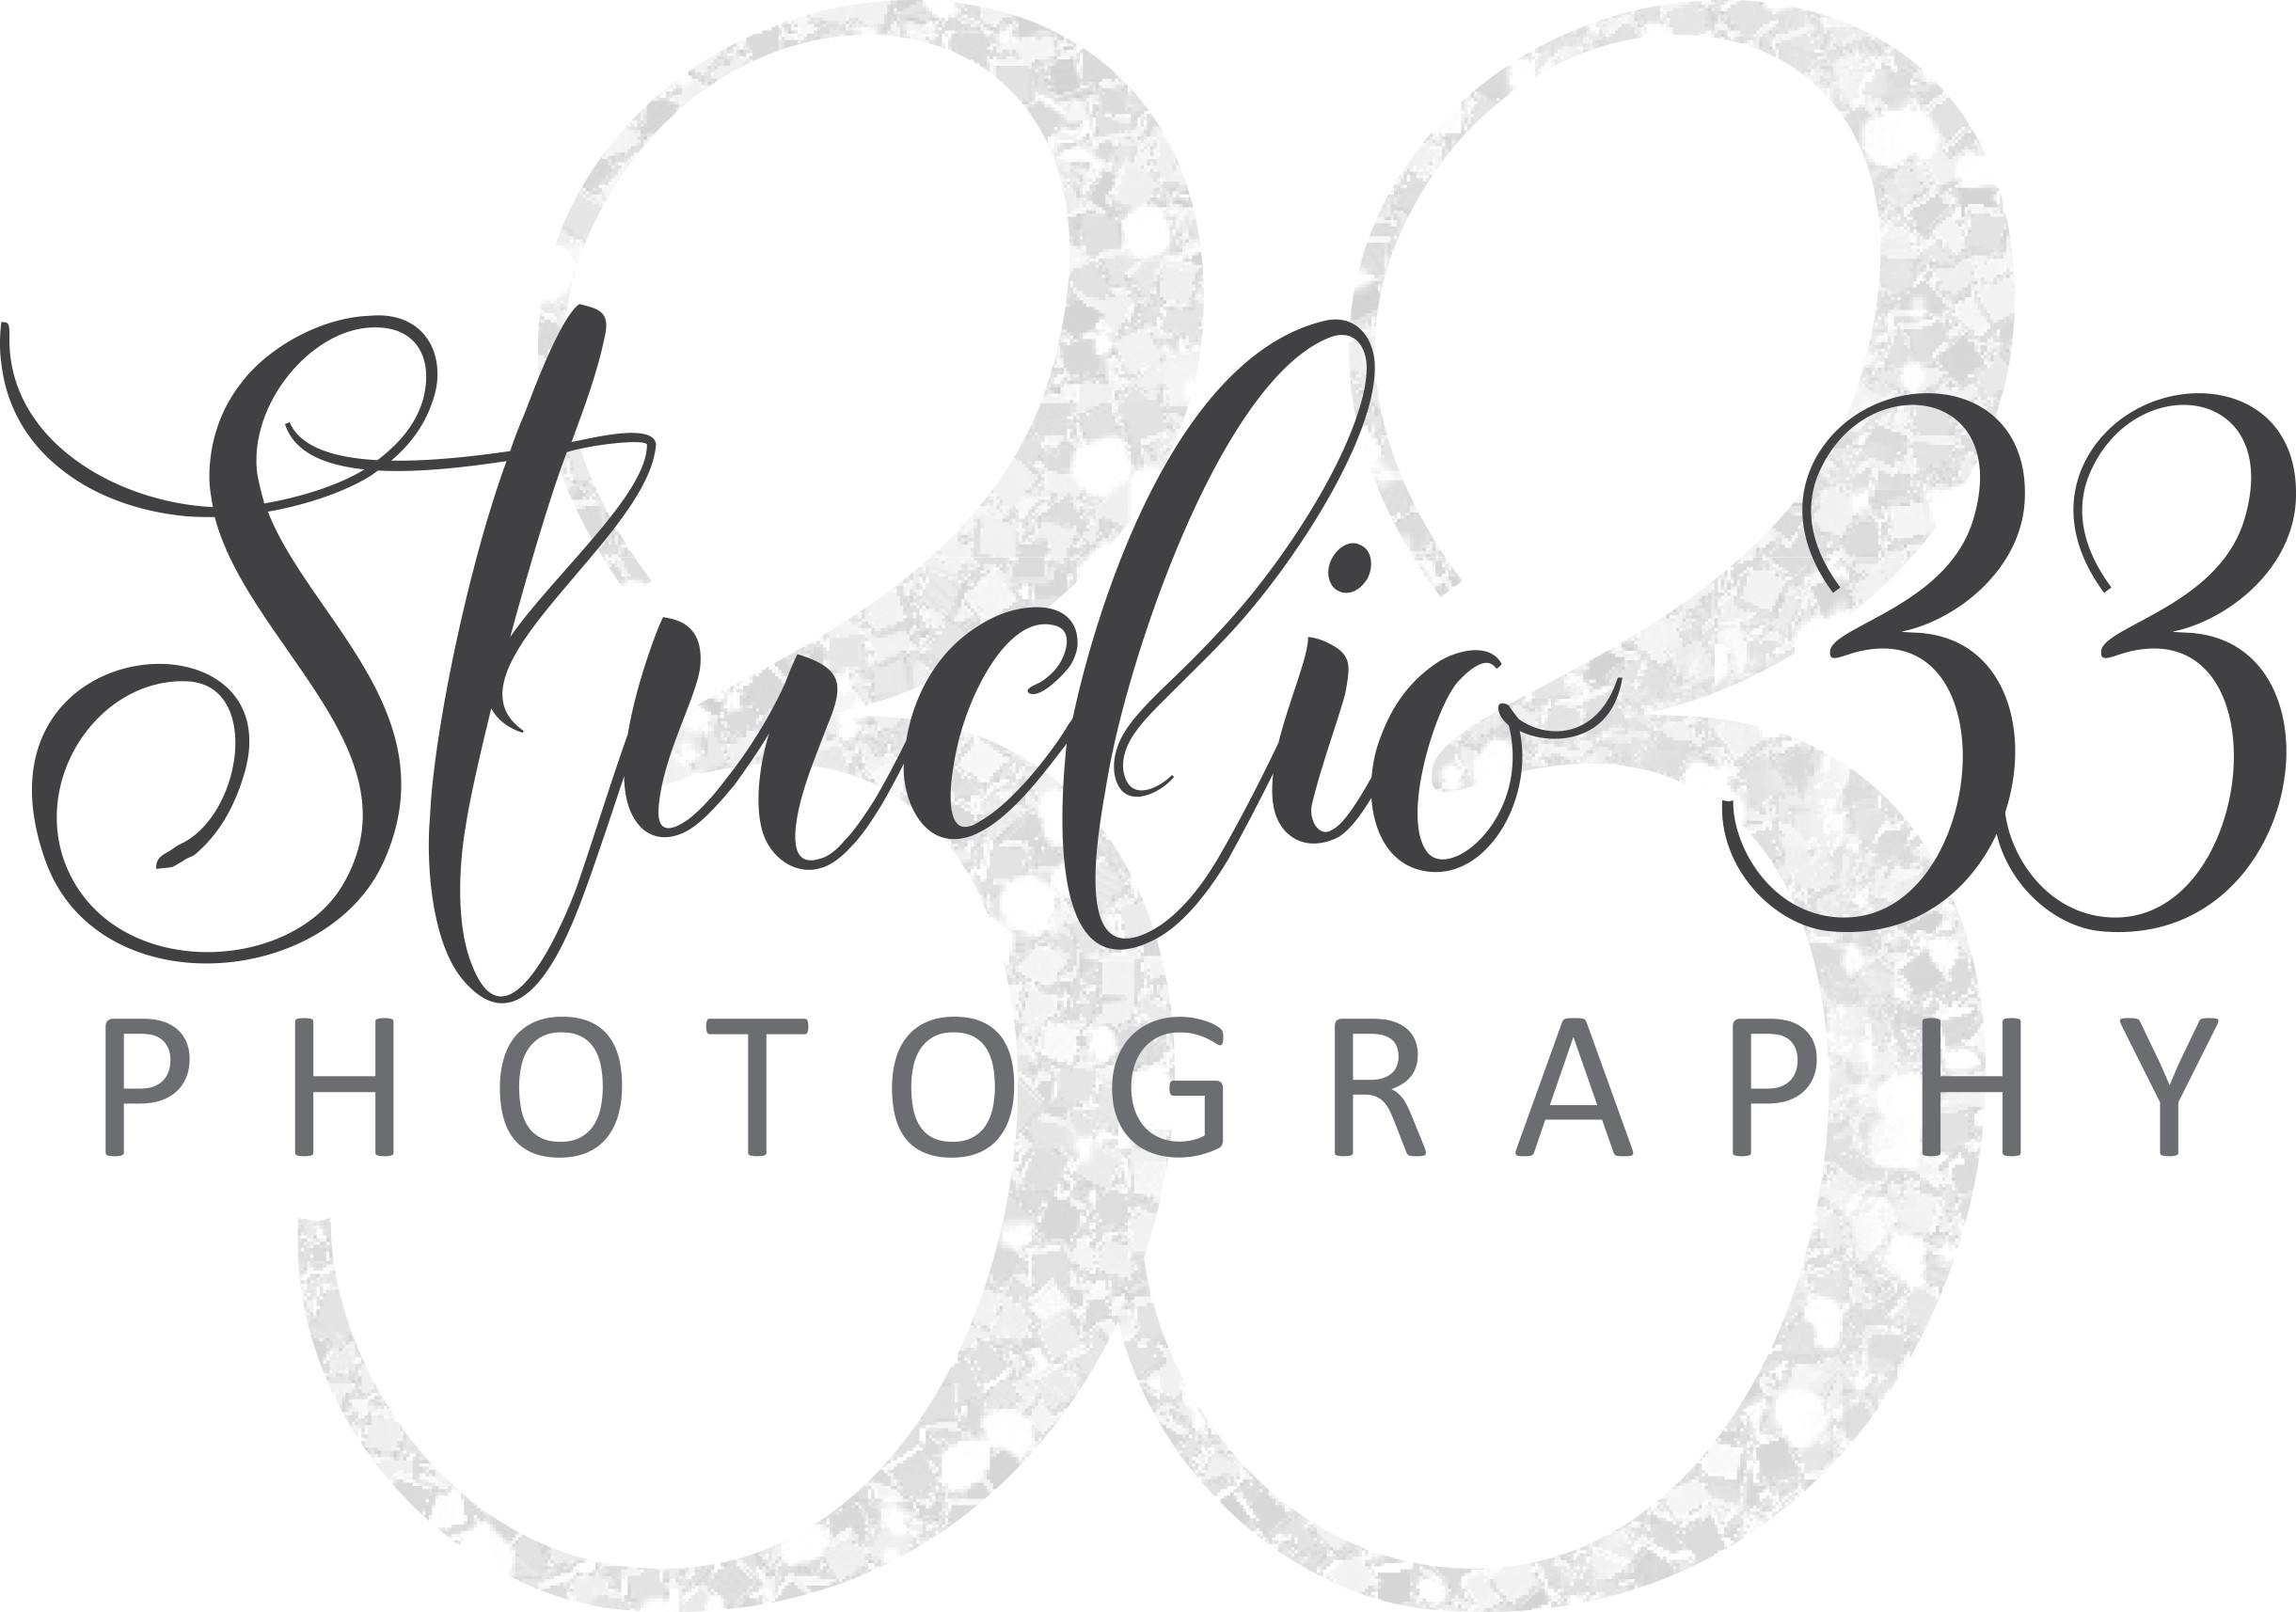 Studio 33 Photography LLC